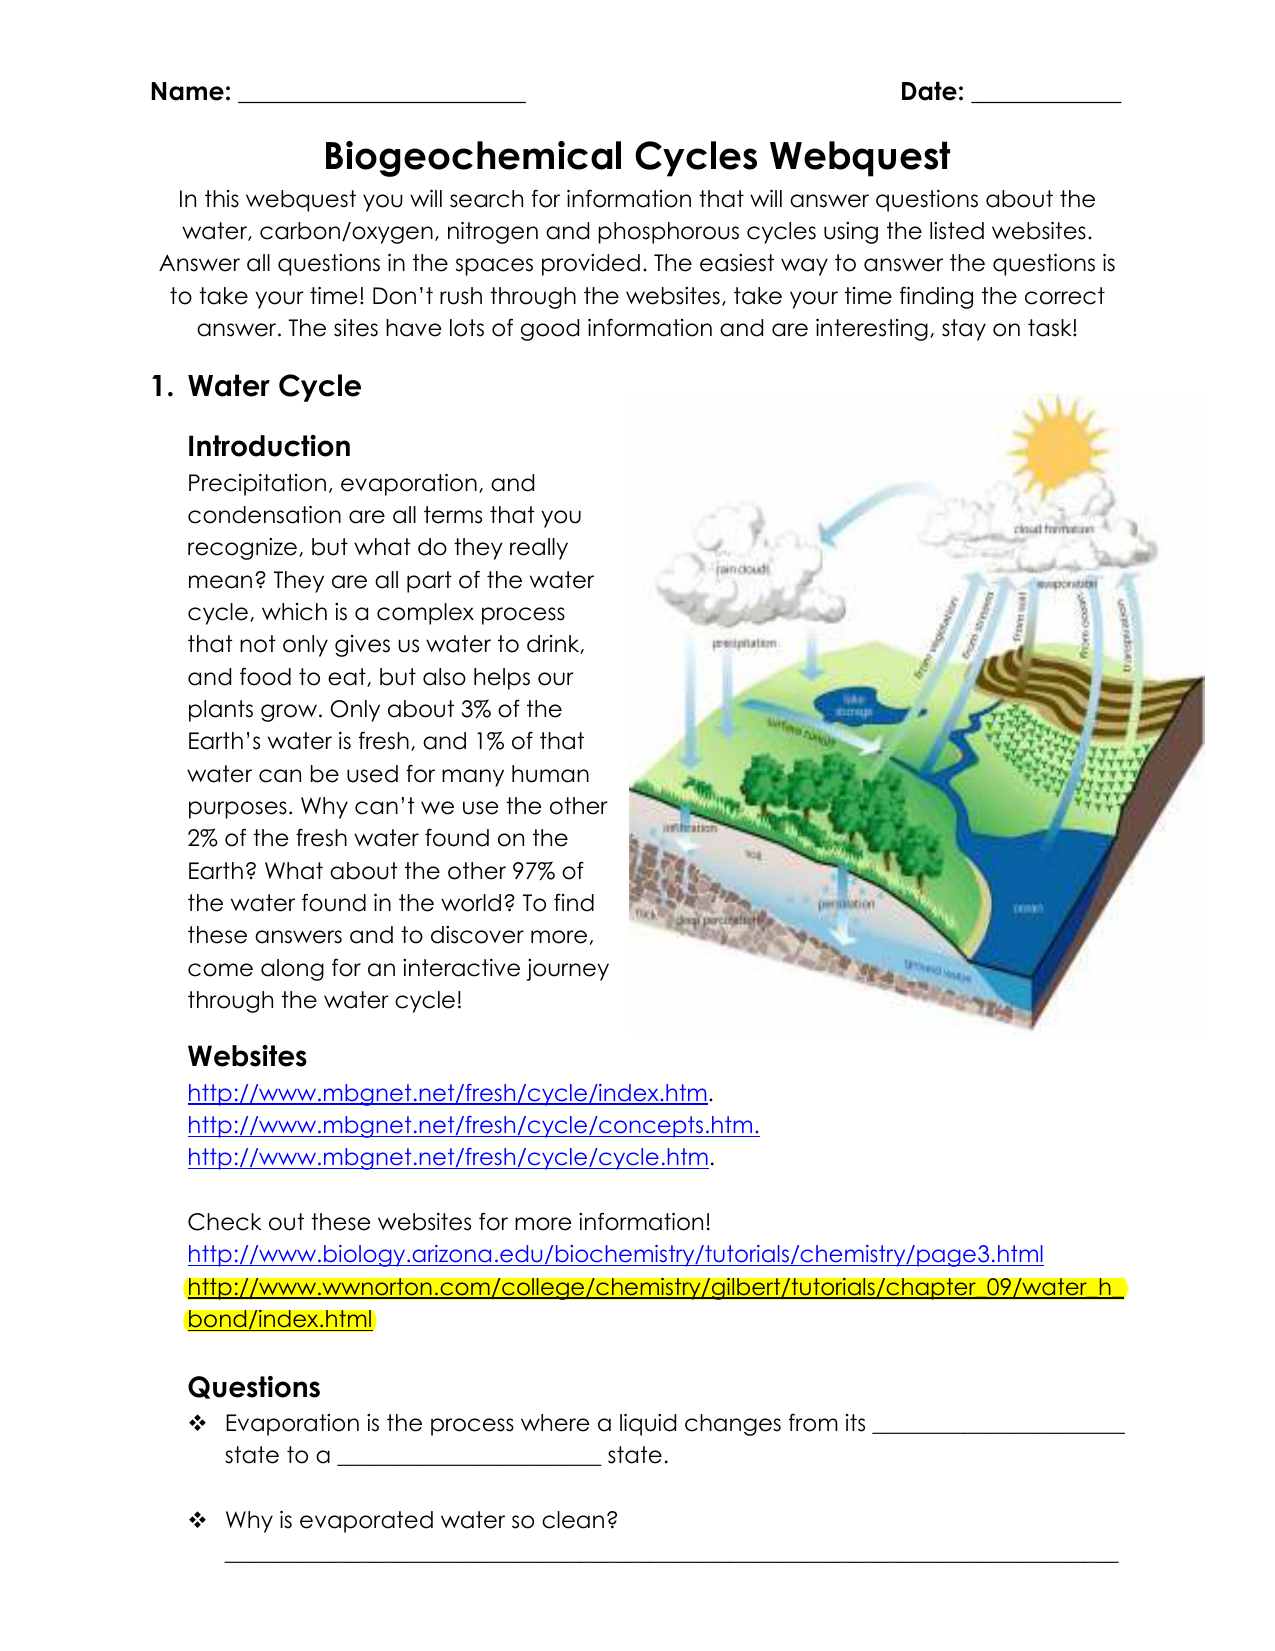 worksheet the water cycle worksheet answers grass fedjp worksheet study site. Black Bedroom Furniture Sets. Home Design Ideas